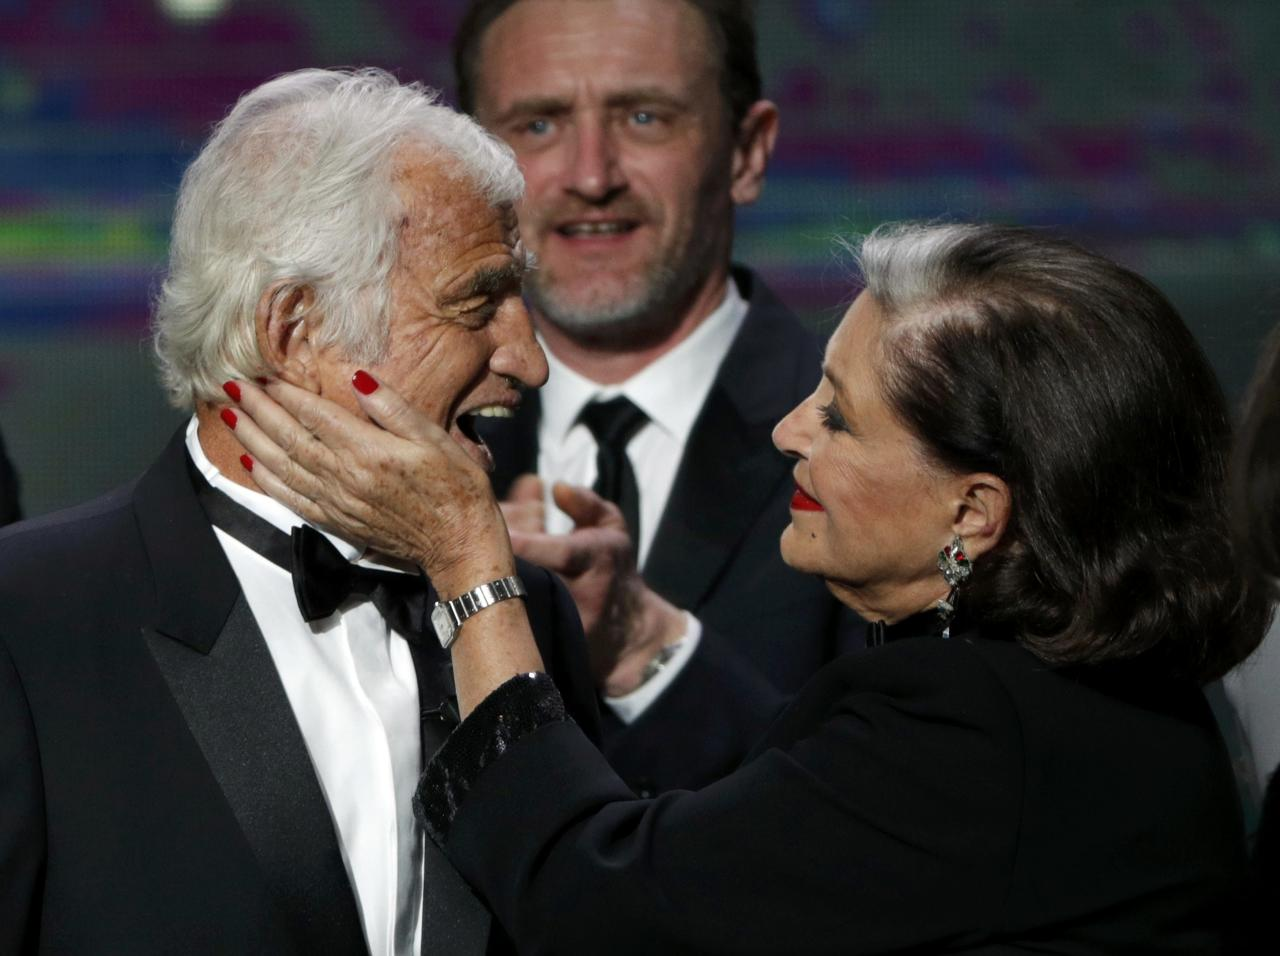 Actress Francoise Fabian congratulates actor Jean-Paul Belmondo (L) on stage as he receives an Honorary Cesar Award at the 42nd Cesar Awards ceremony in Paris, France, February 24, 2017.       REUTERS/Philippe Wojazer